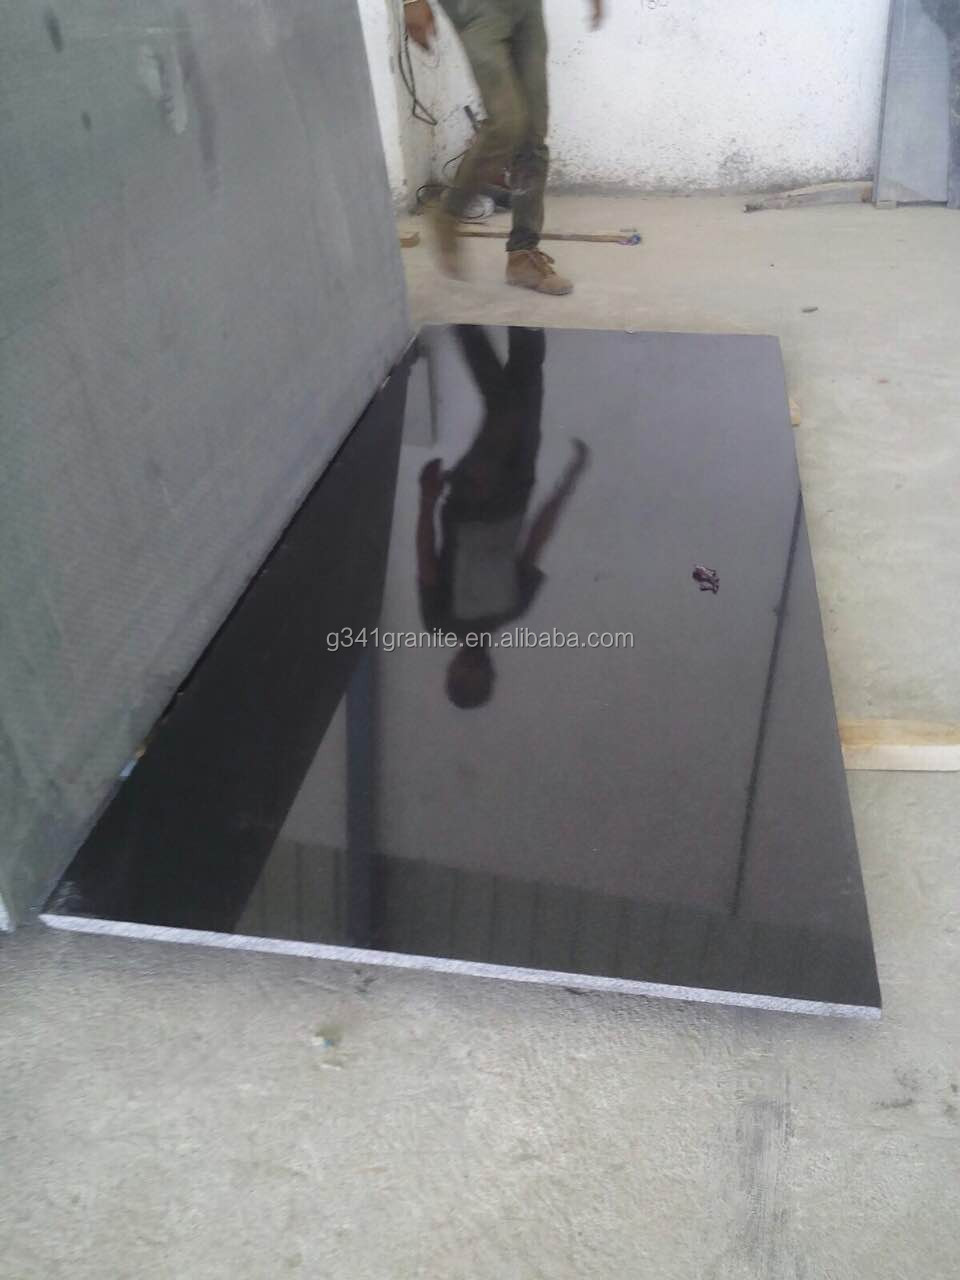 black granite in khammam,nature stone promotion